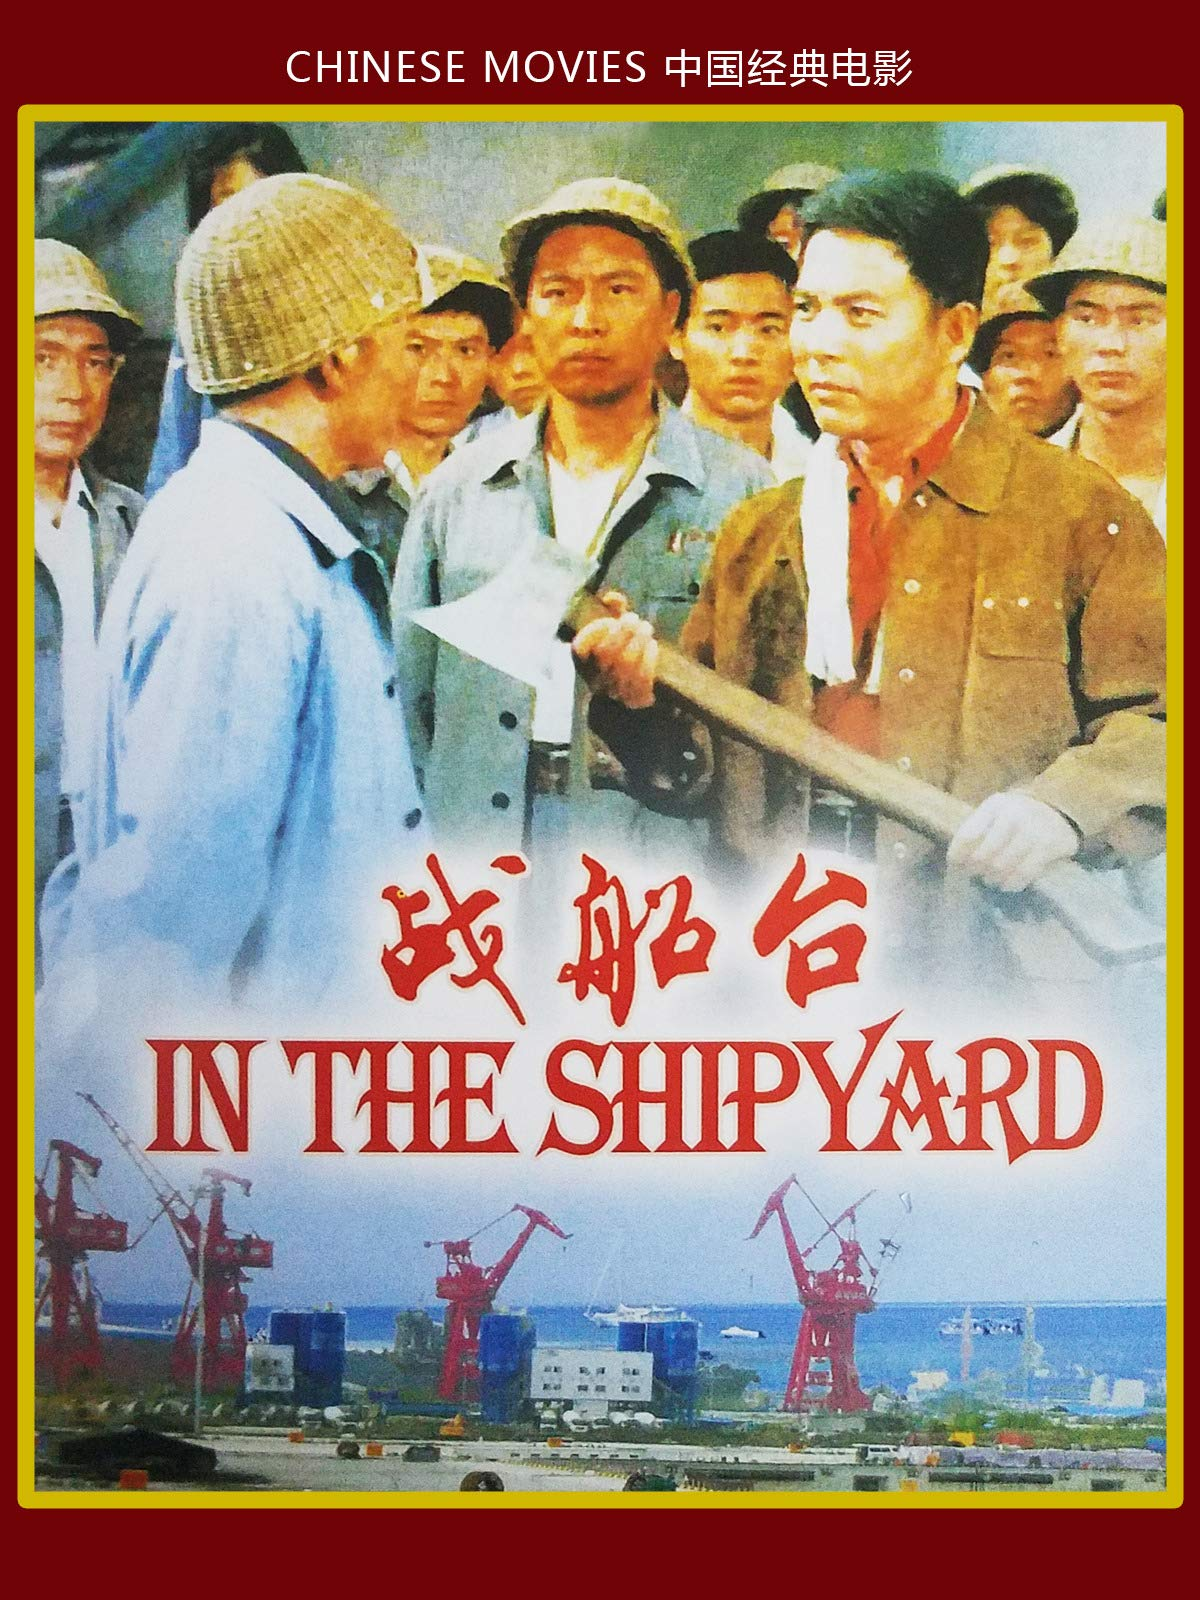 Chinese movies-In the shipyard